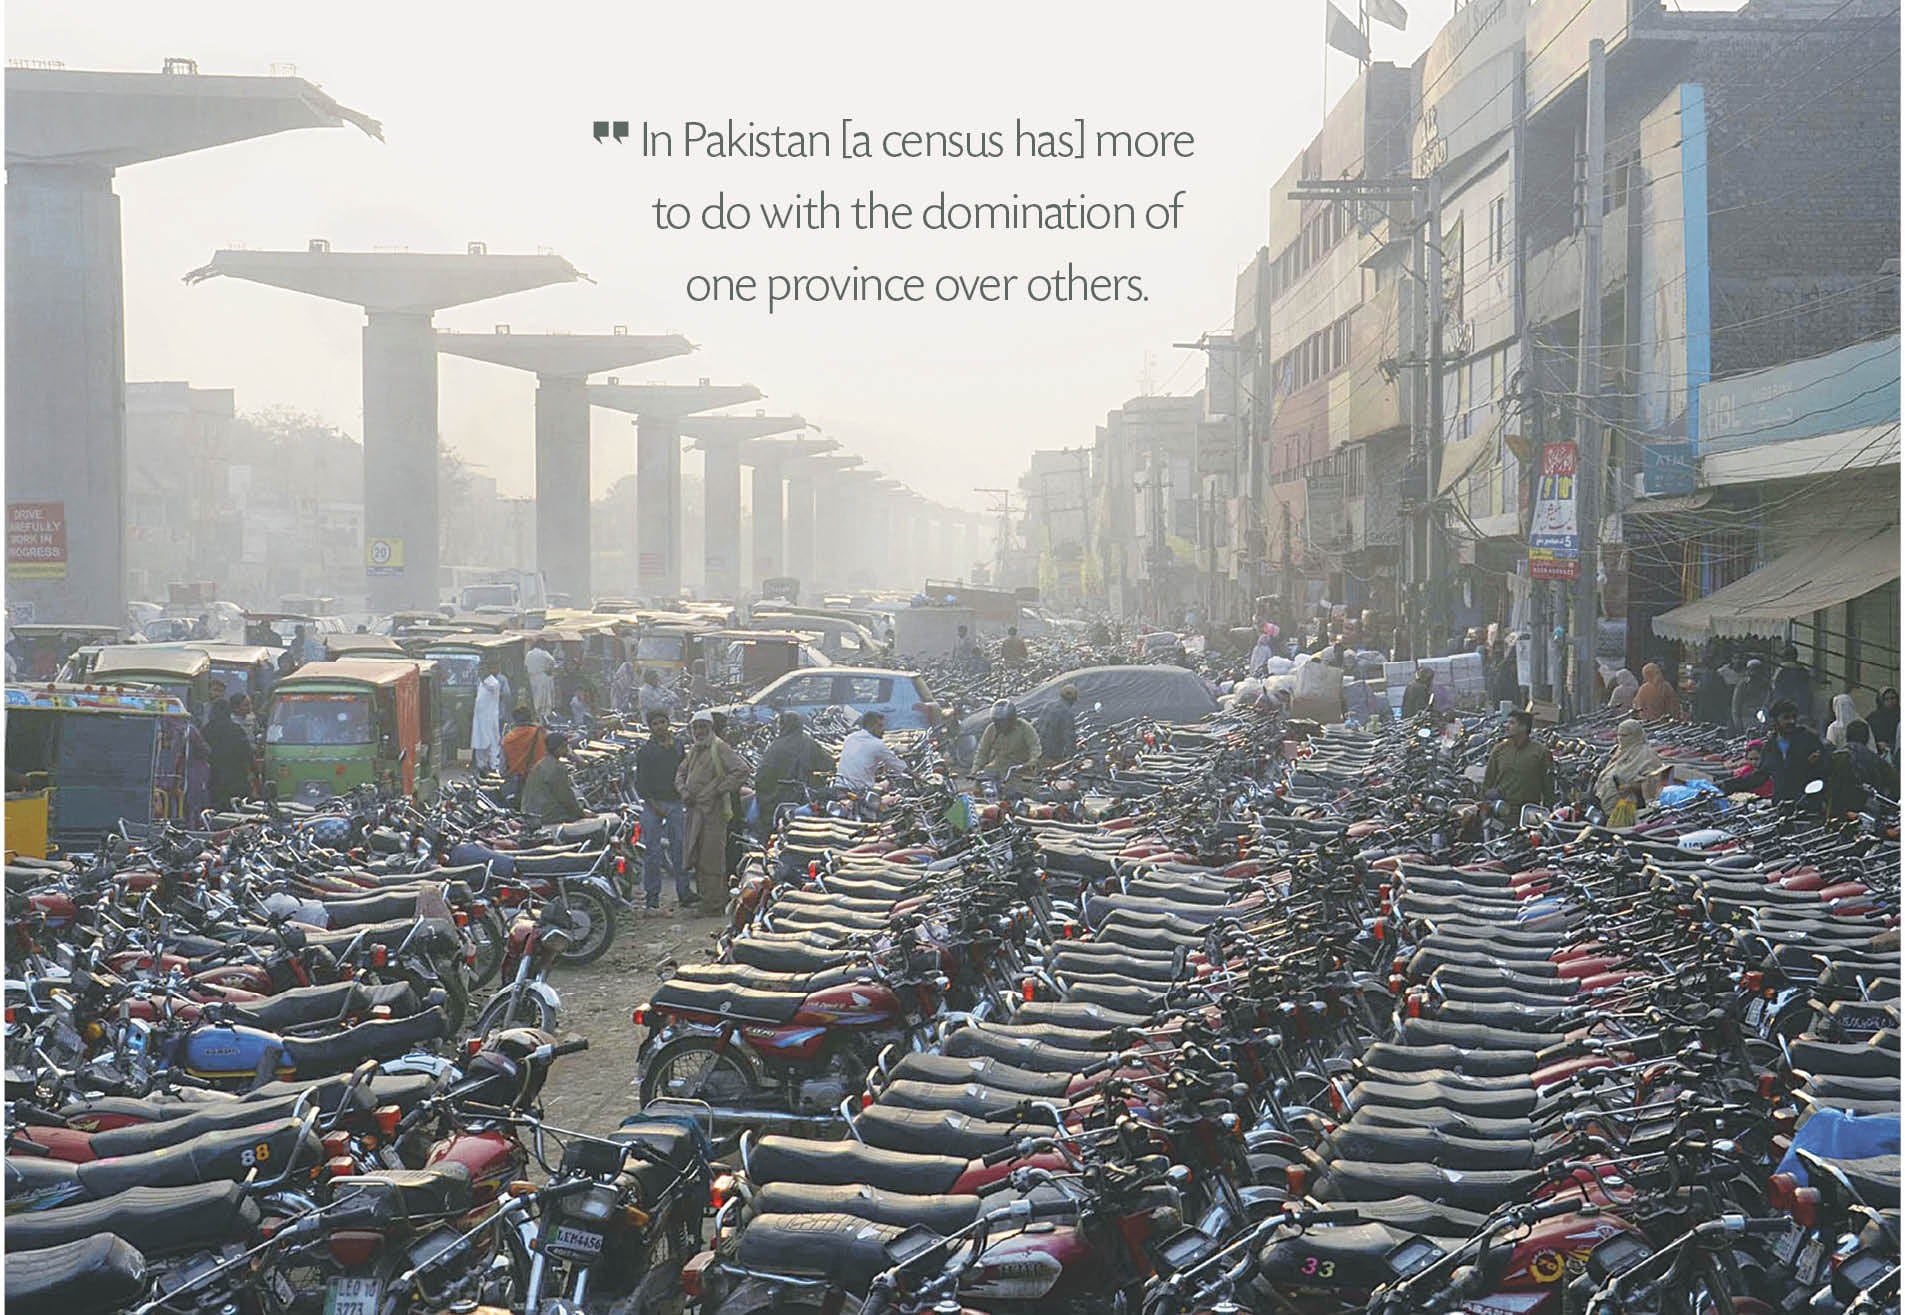 Motorcycles crowd Shalimar Road in Lahore | Tariq Mehmood, White Star